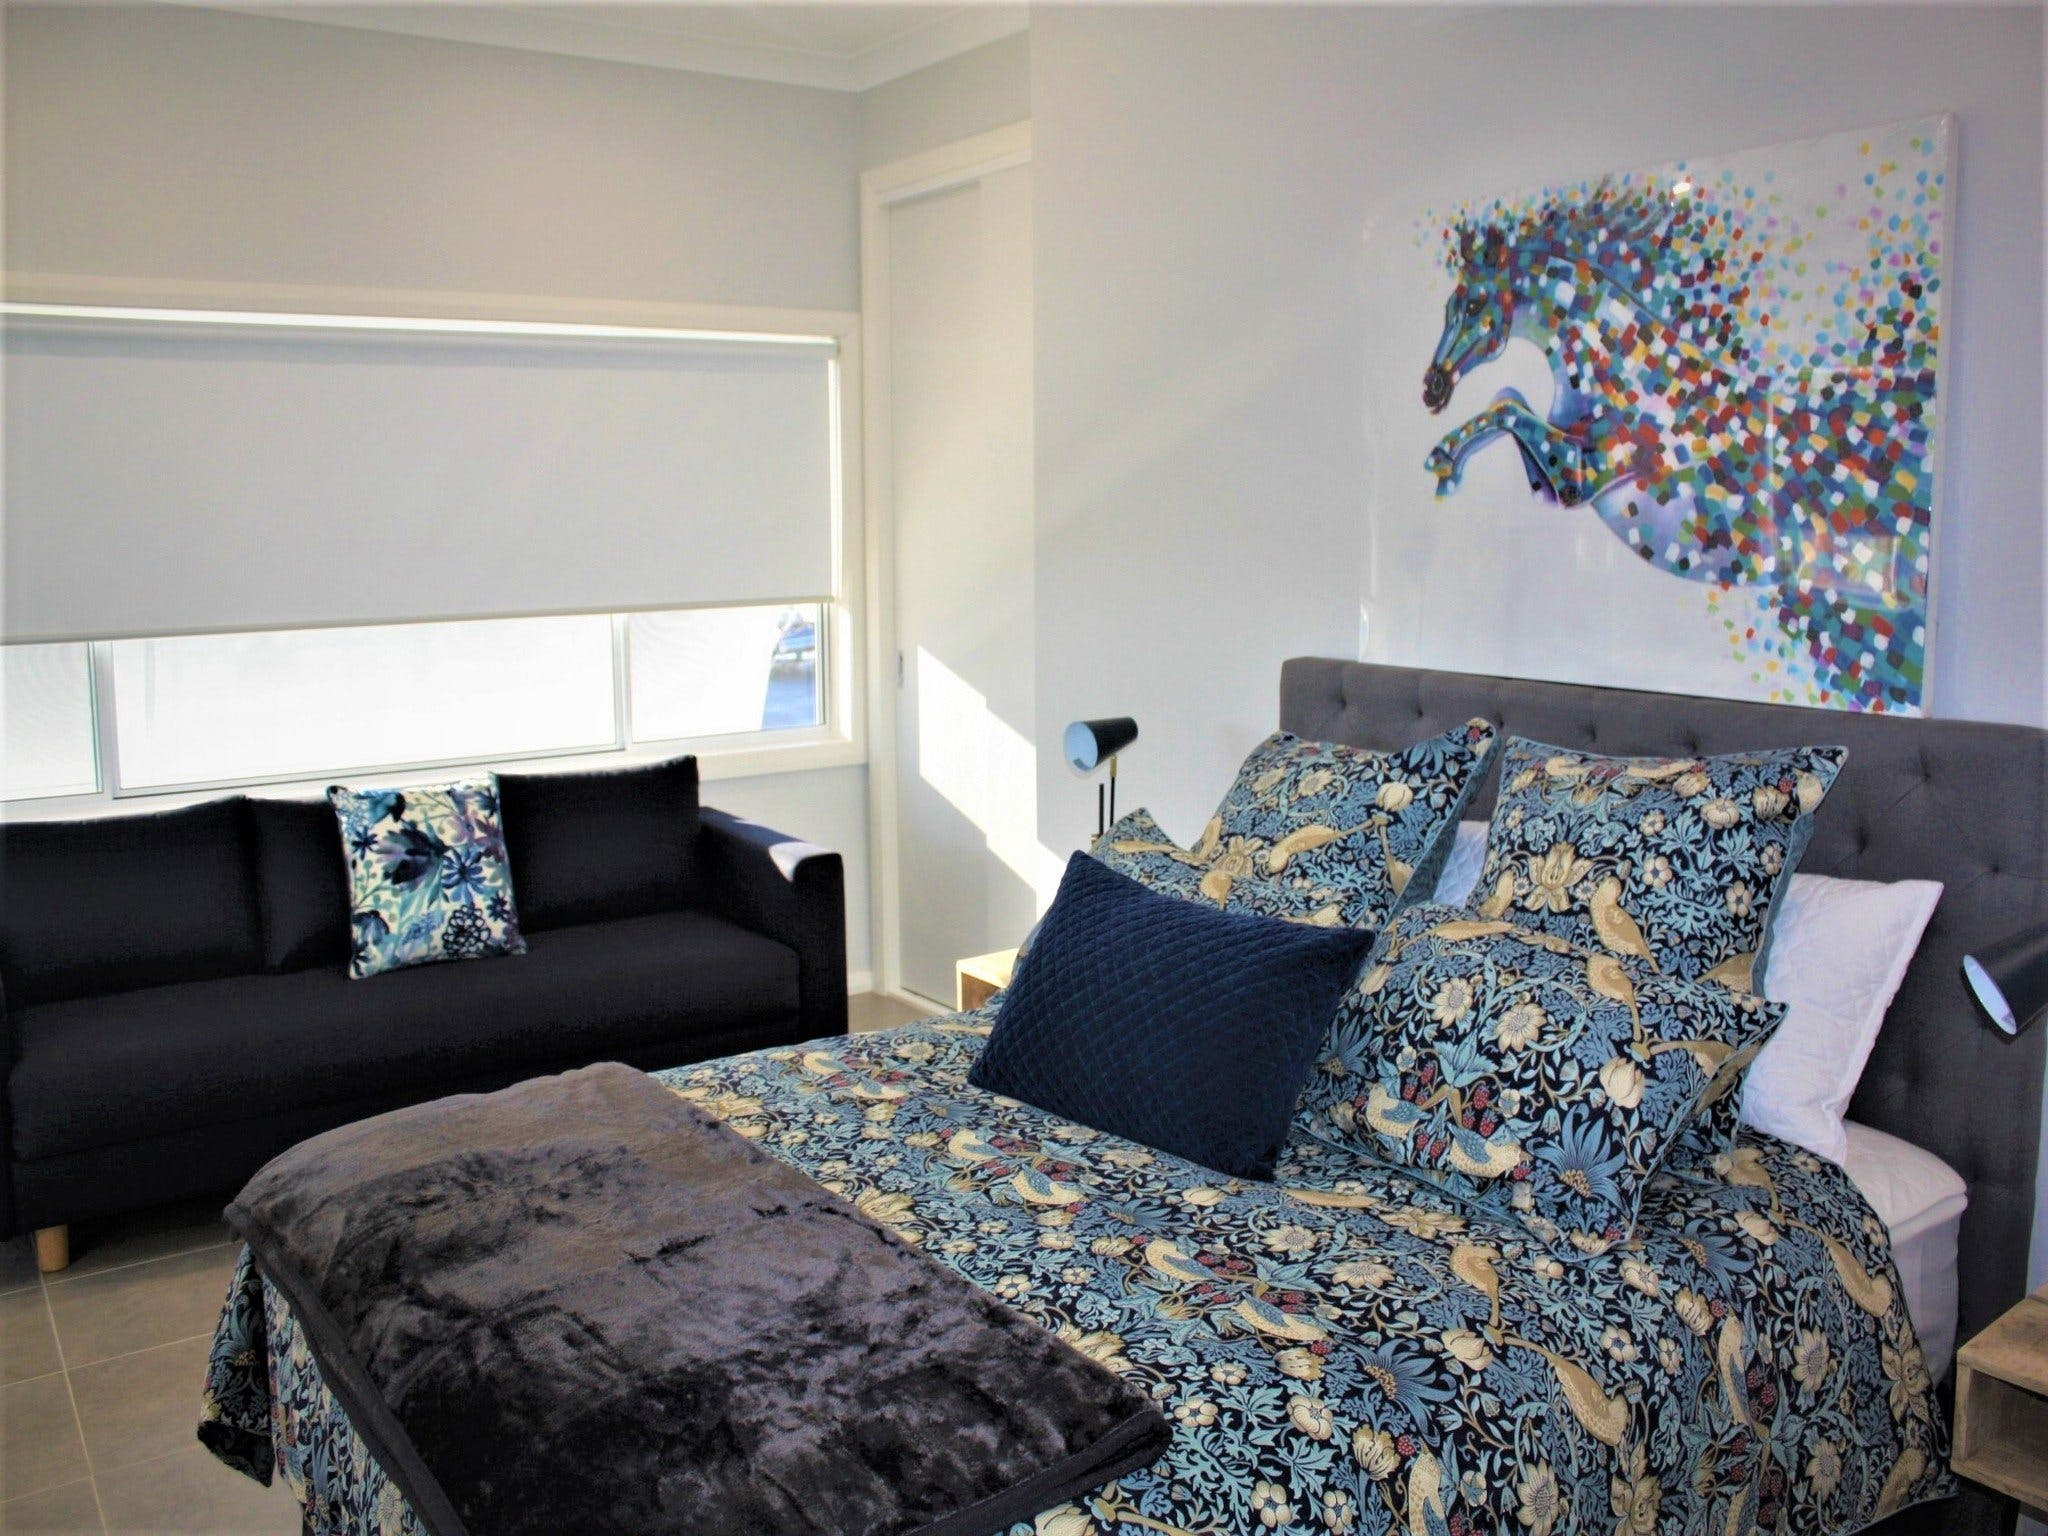 Coolah Shorts - Self Contained Apartments - Accommodation Broome